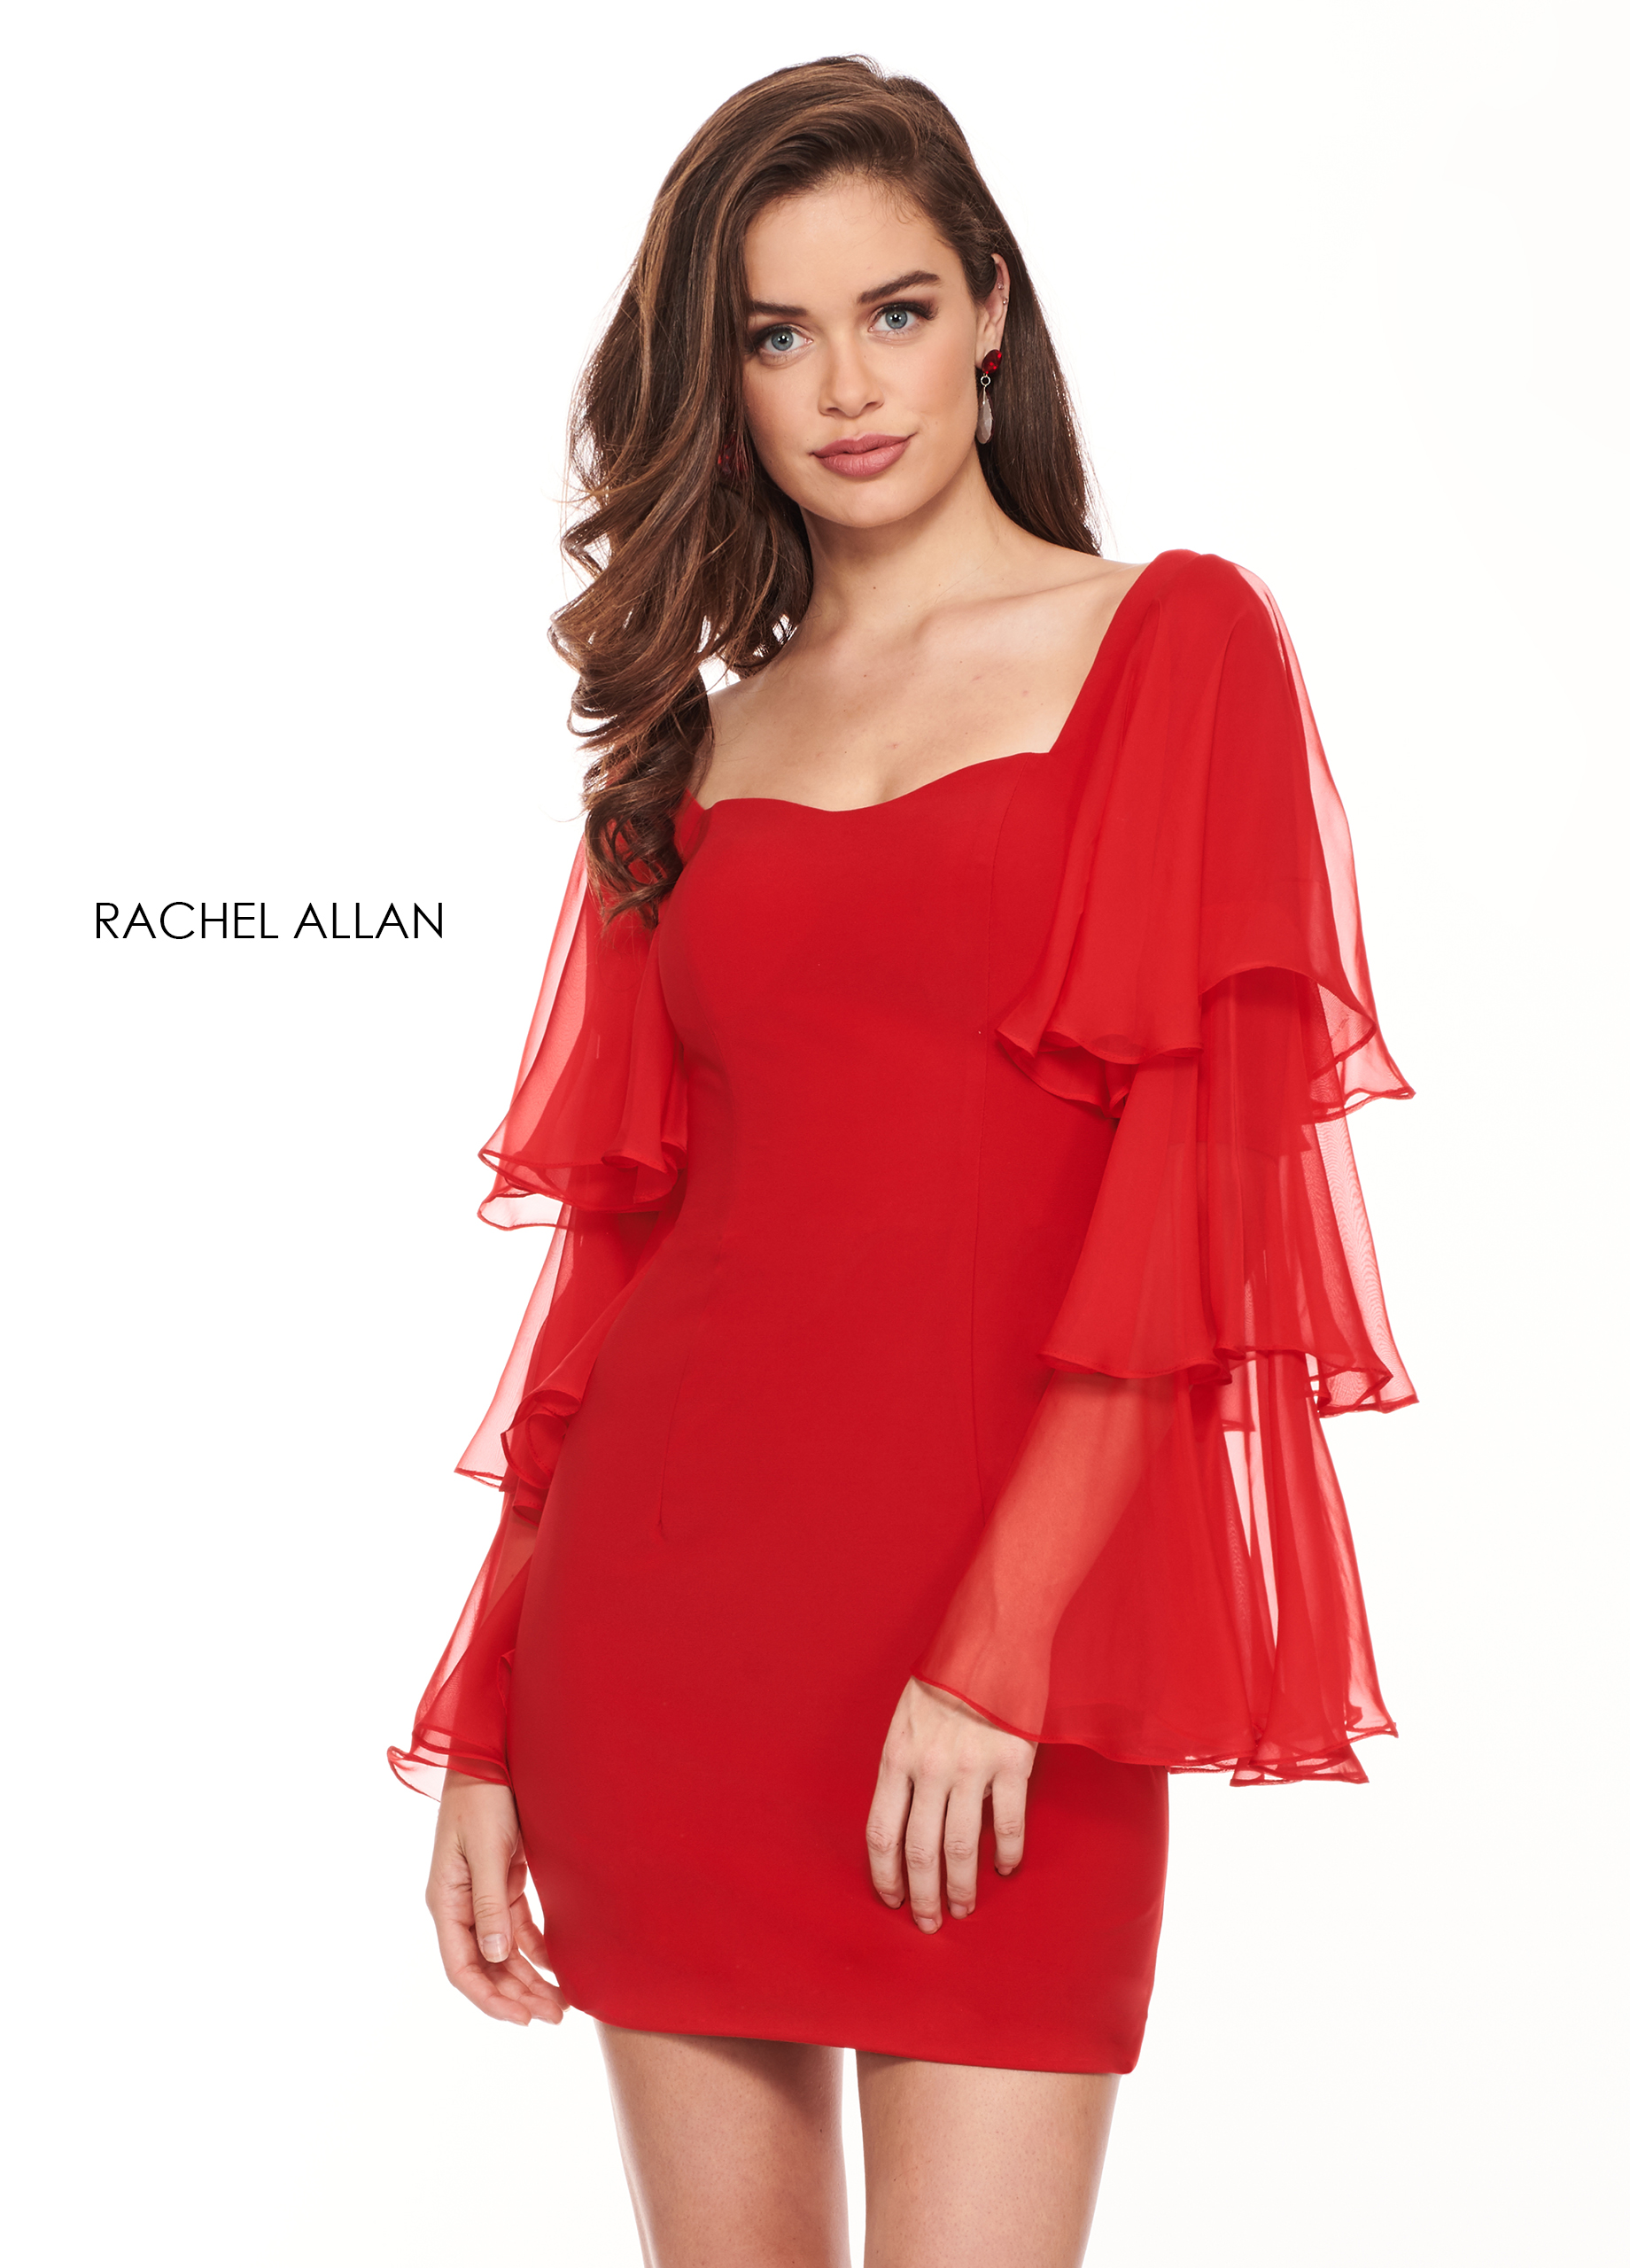 Square Fitted Mini Cocktail Dresses in Red Color